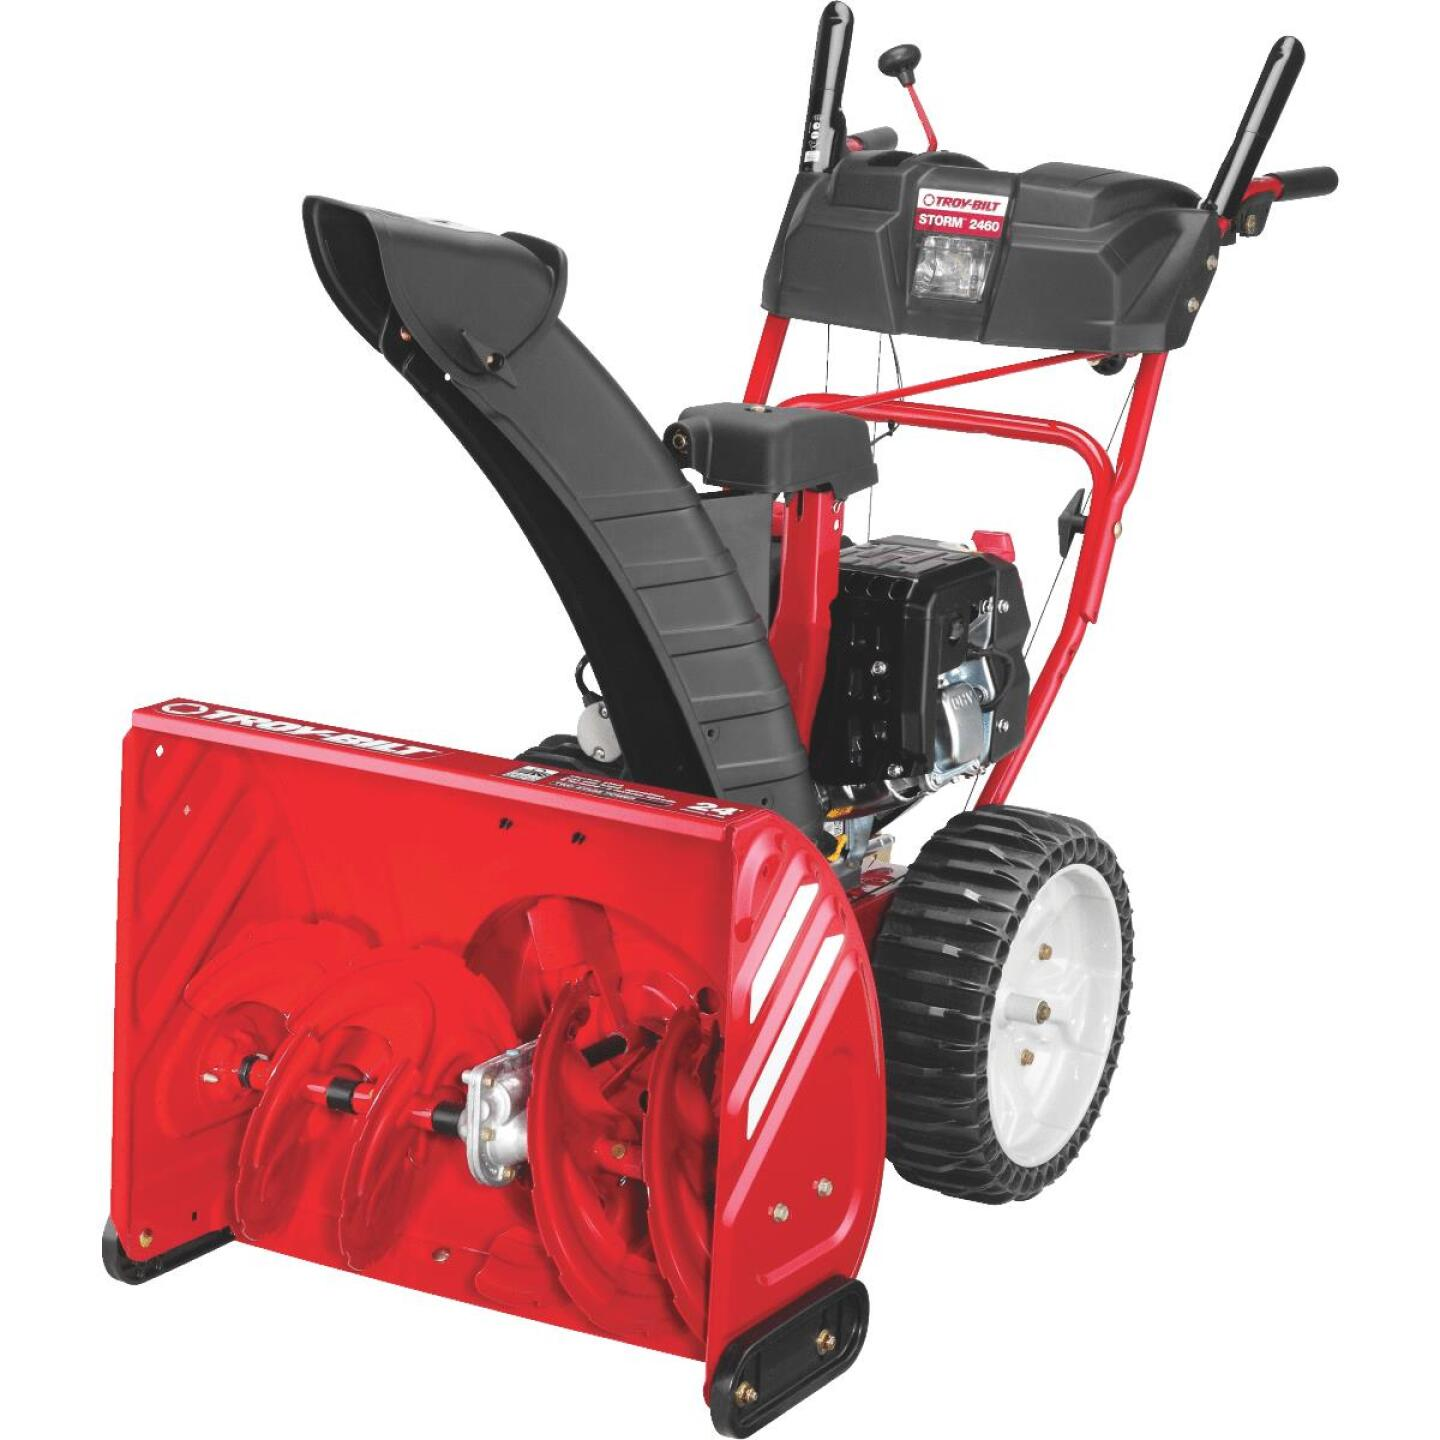 Troy-Bilt Storm 24 In. 208cc 2-Stage Gas Snow Blower Image 2